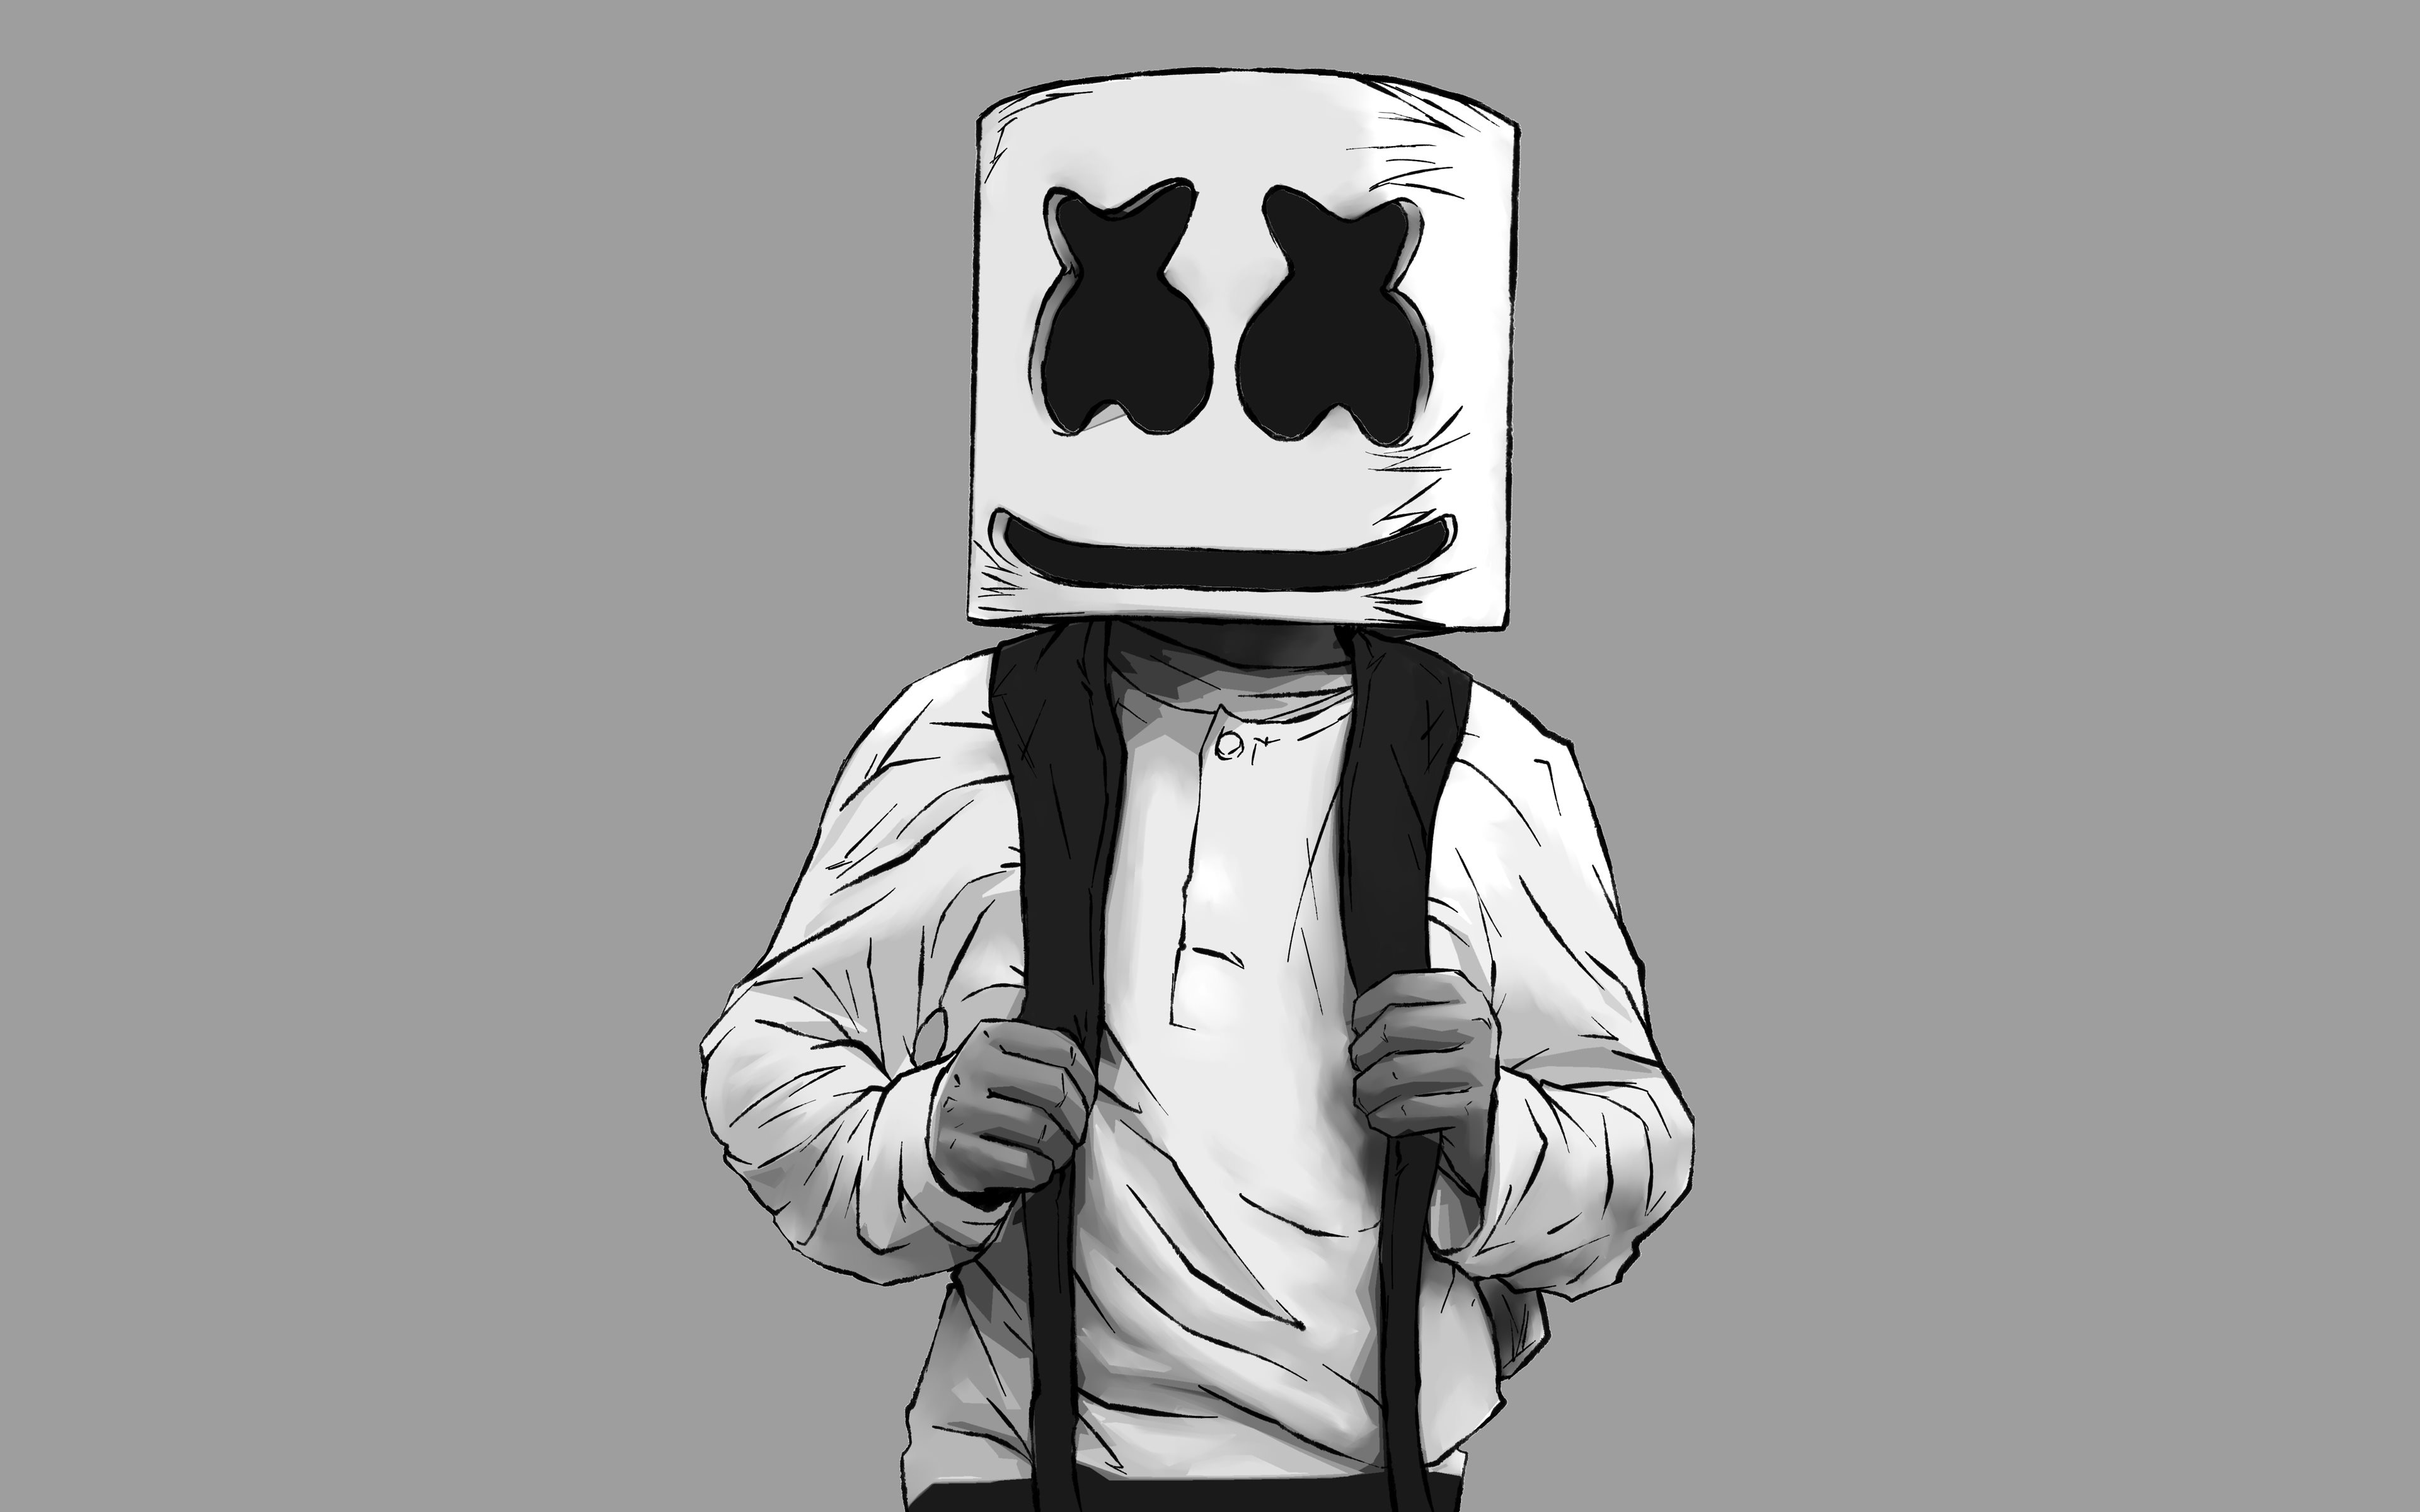 Wallpaper Marshmallow Dj Find Hd Wallpapers For Free Marshmello Fortnite Wallpaper Hd 1065979 Hd Wallpaper Backgrounds Download